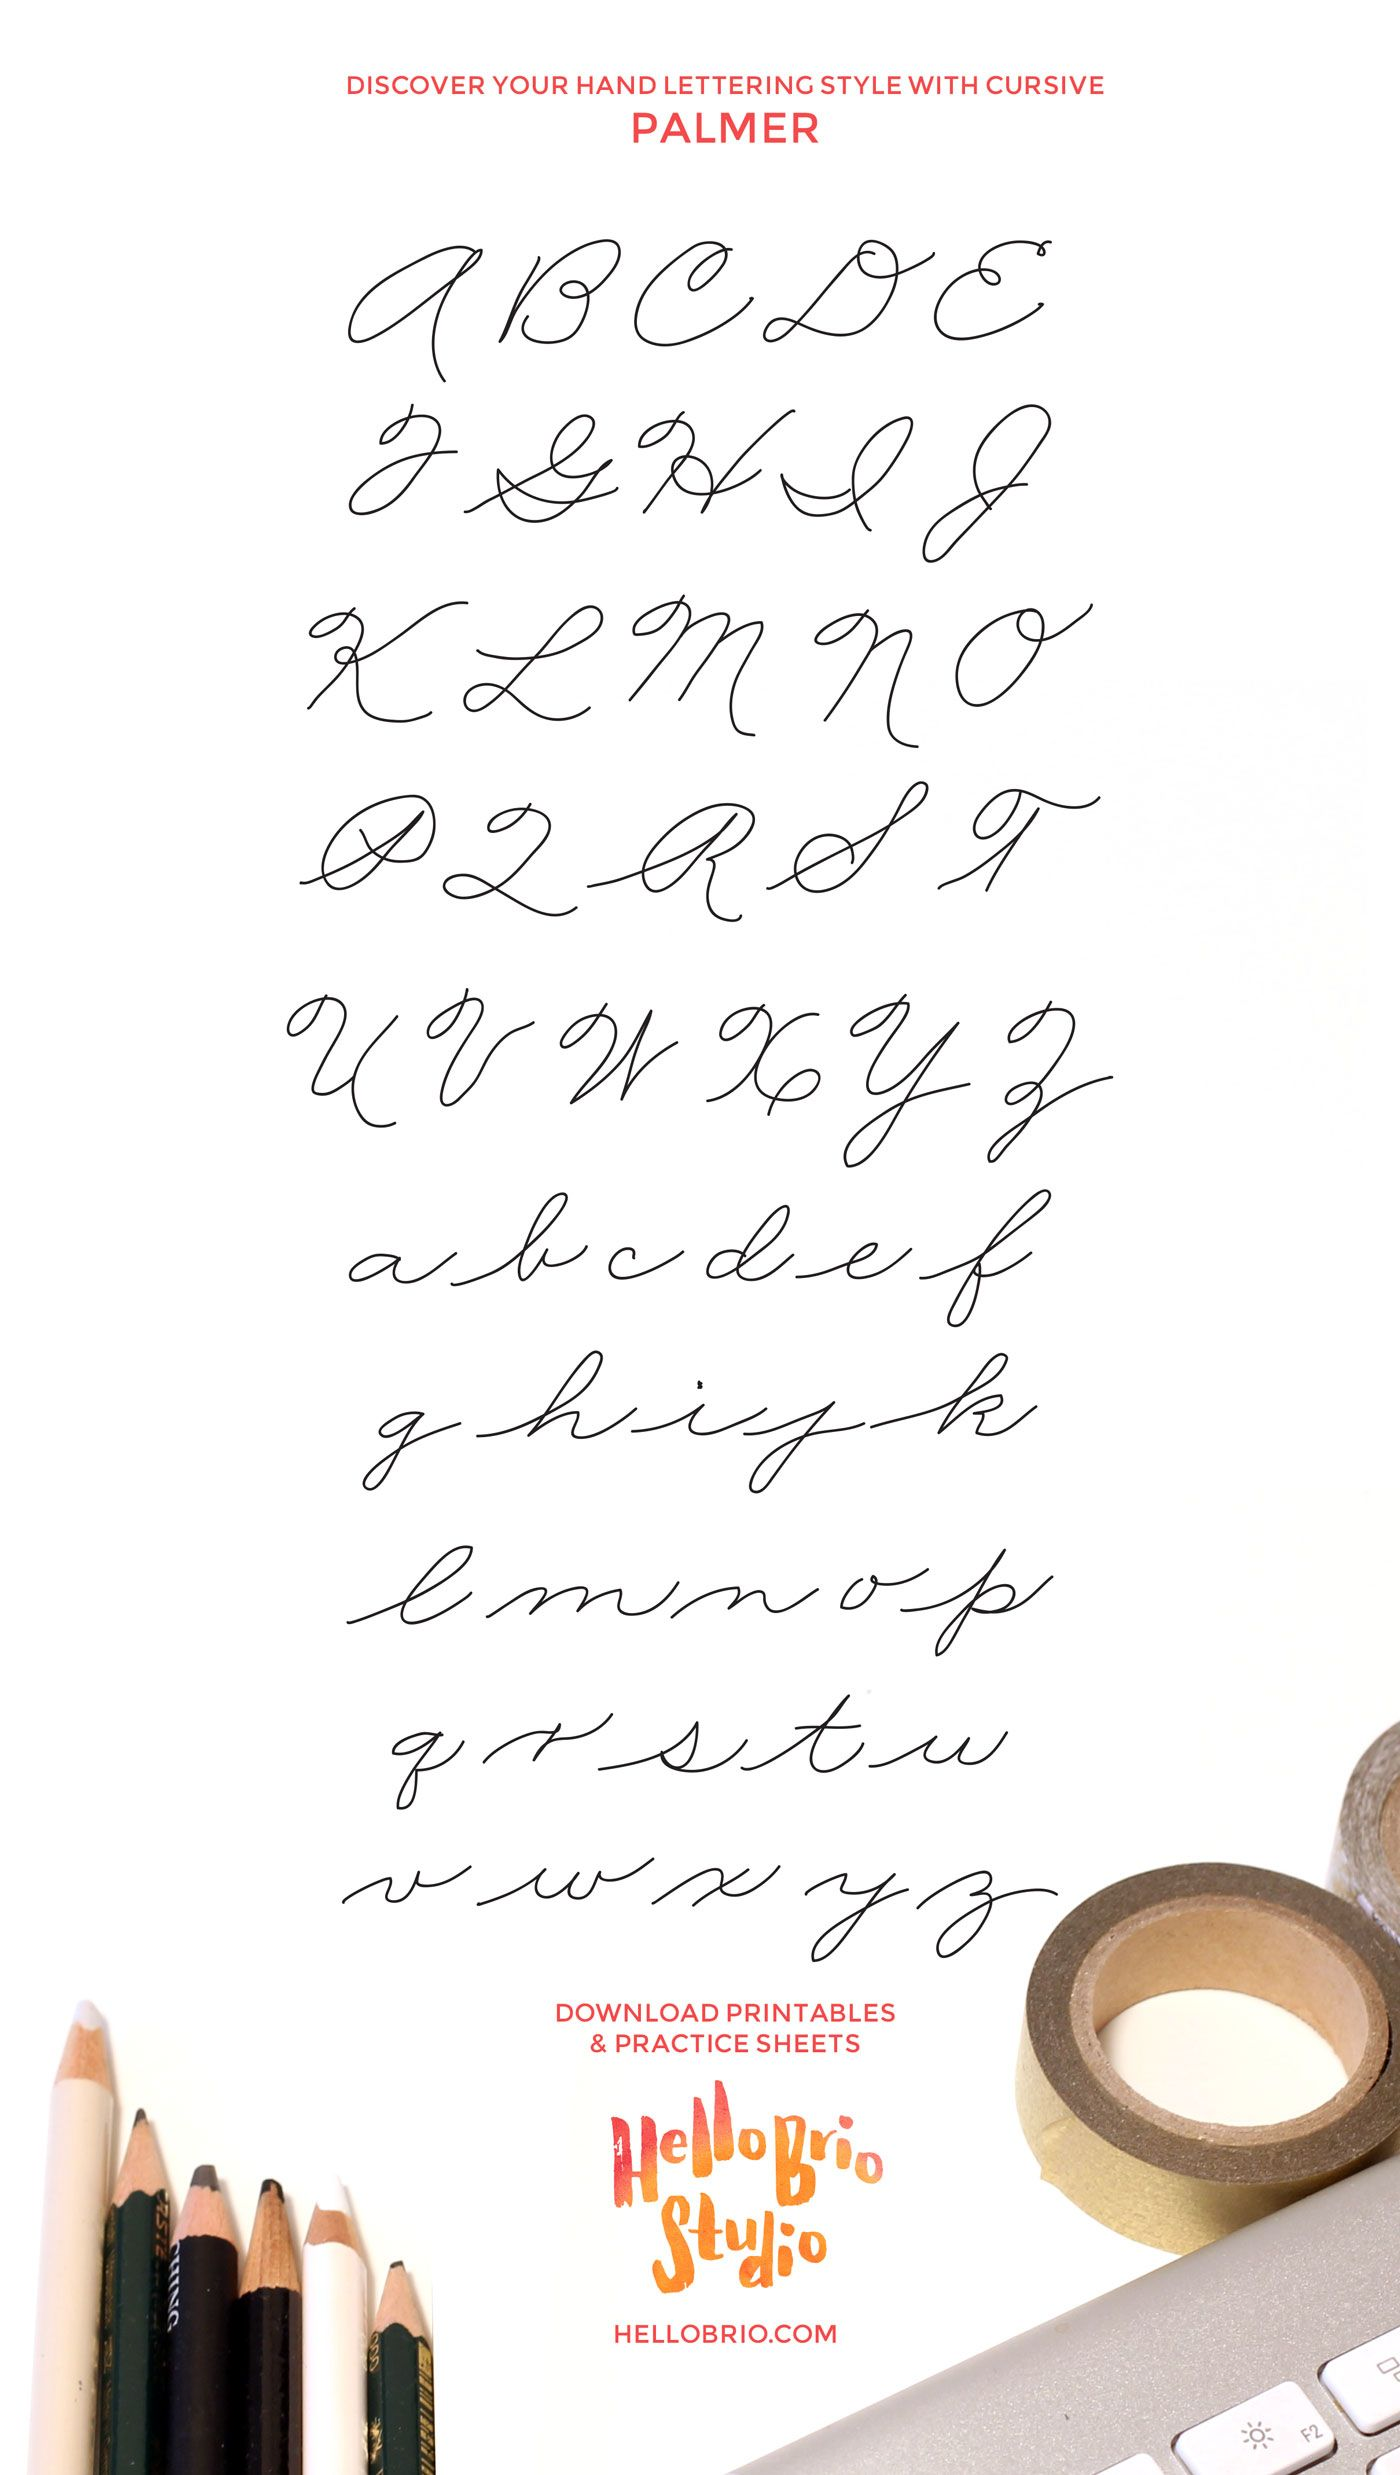 Improve Your Handwriting And Find Your Hand Lettering